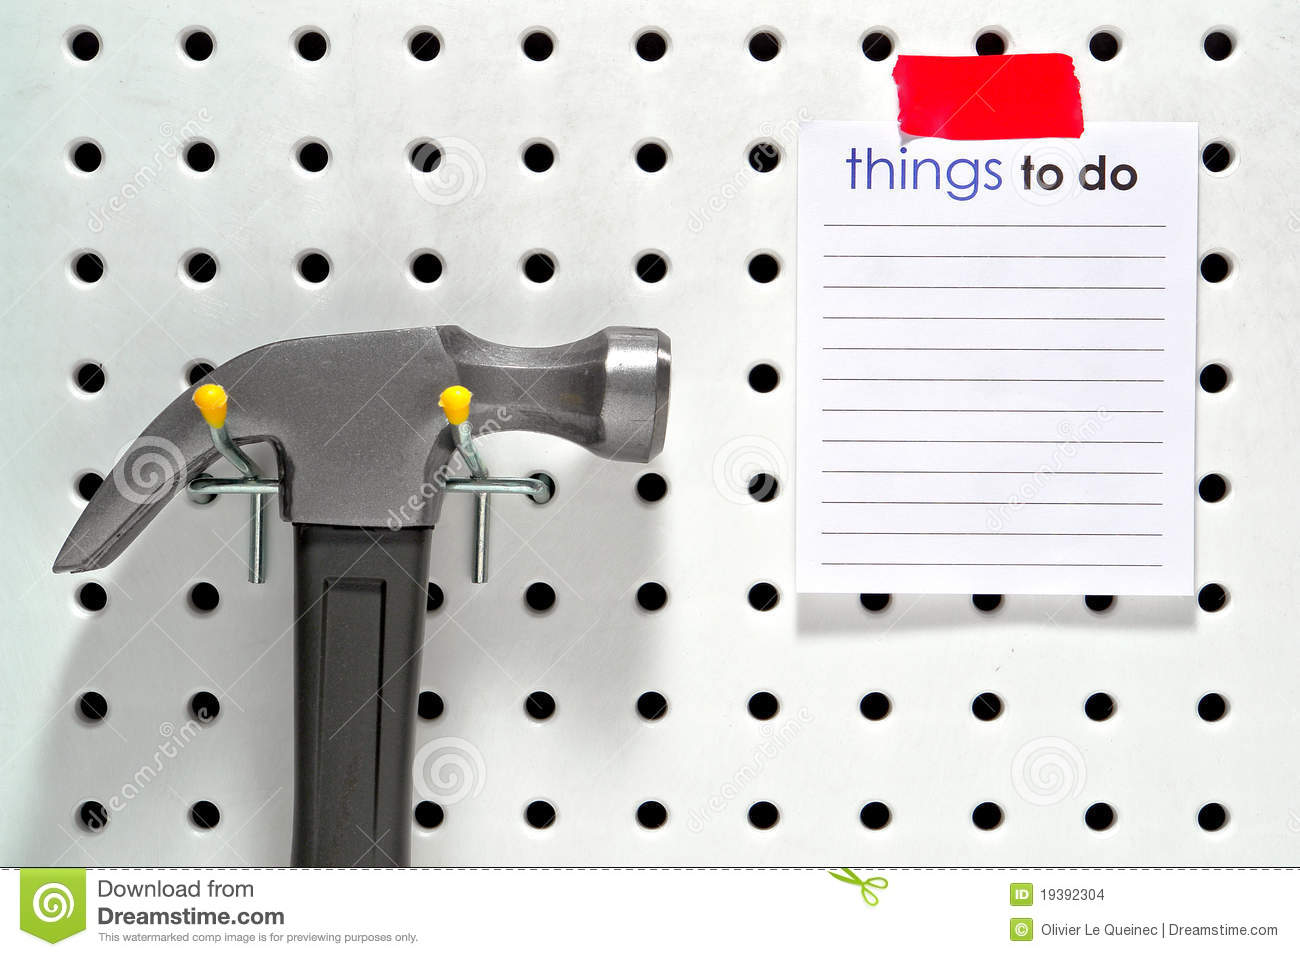 Things to do list and hammer on workshop pegboard stock for List of things to do when building a house